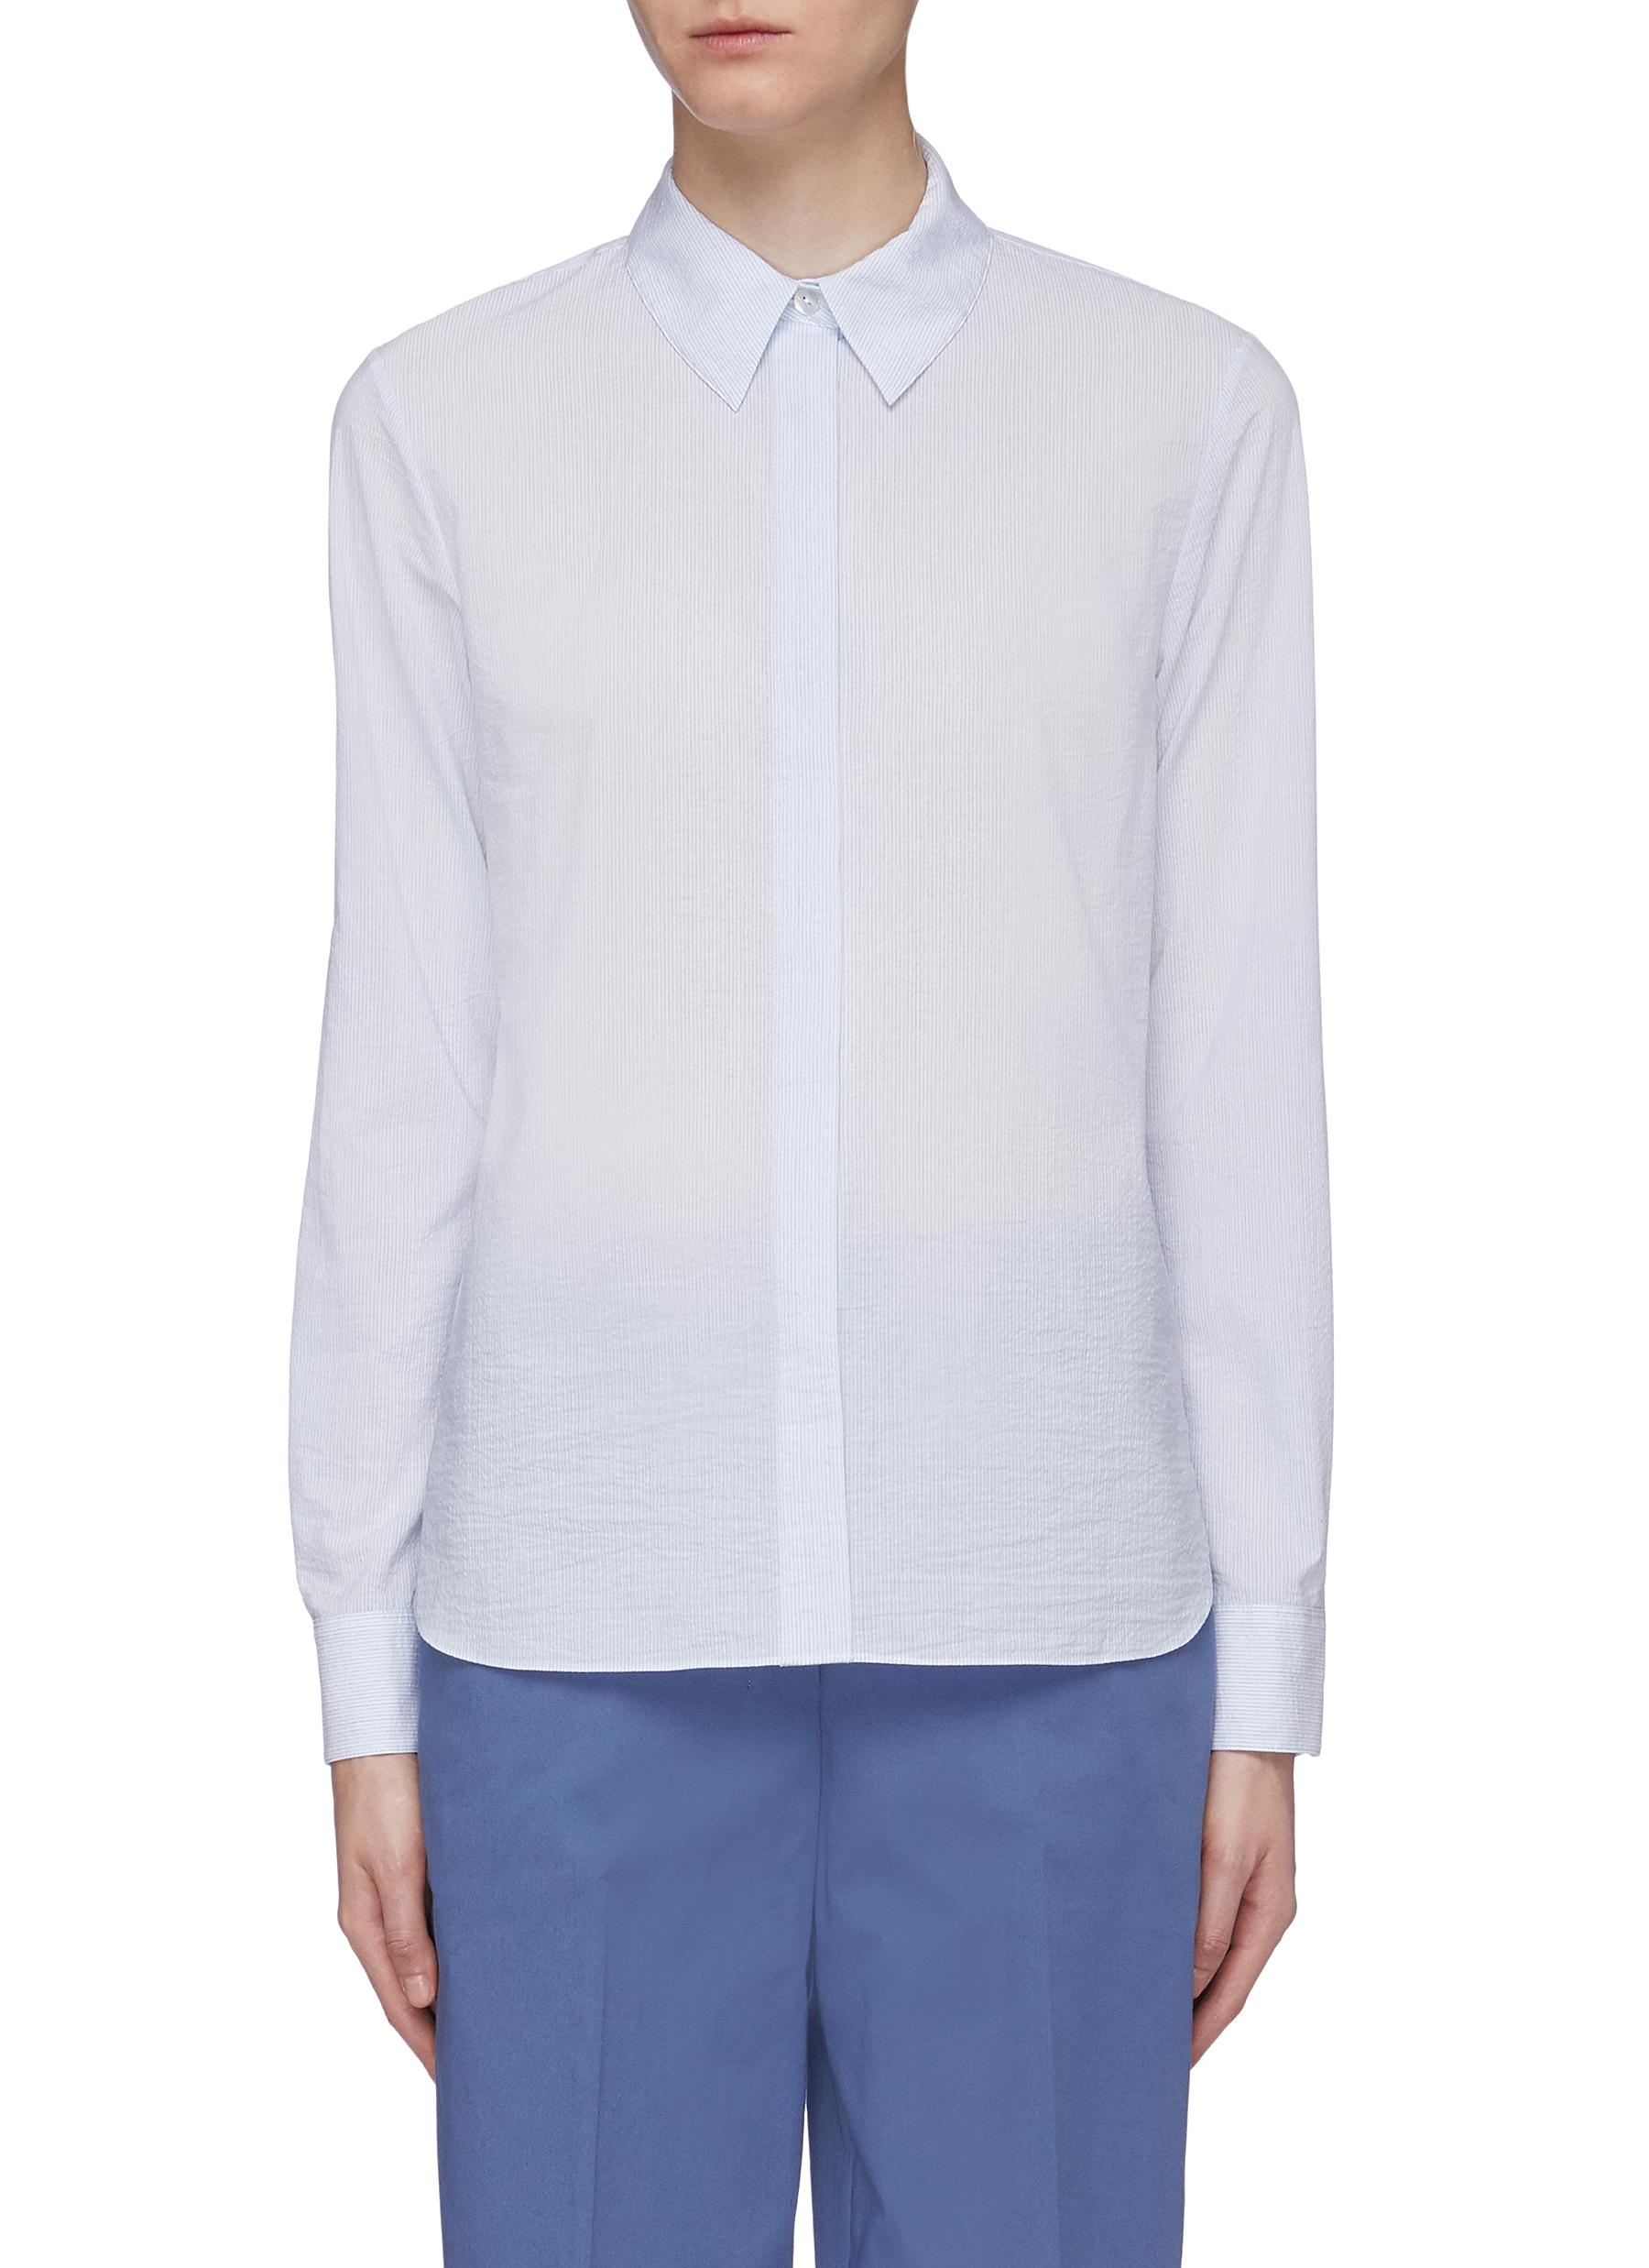 Classic stripe woven shirt by Theory